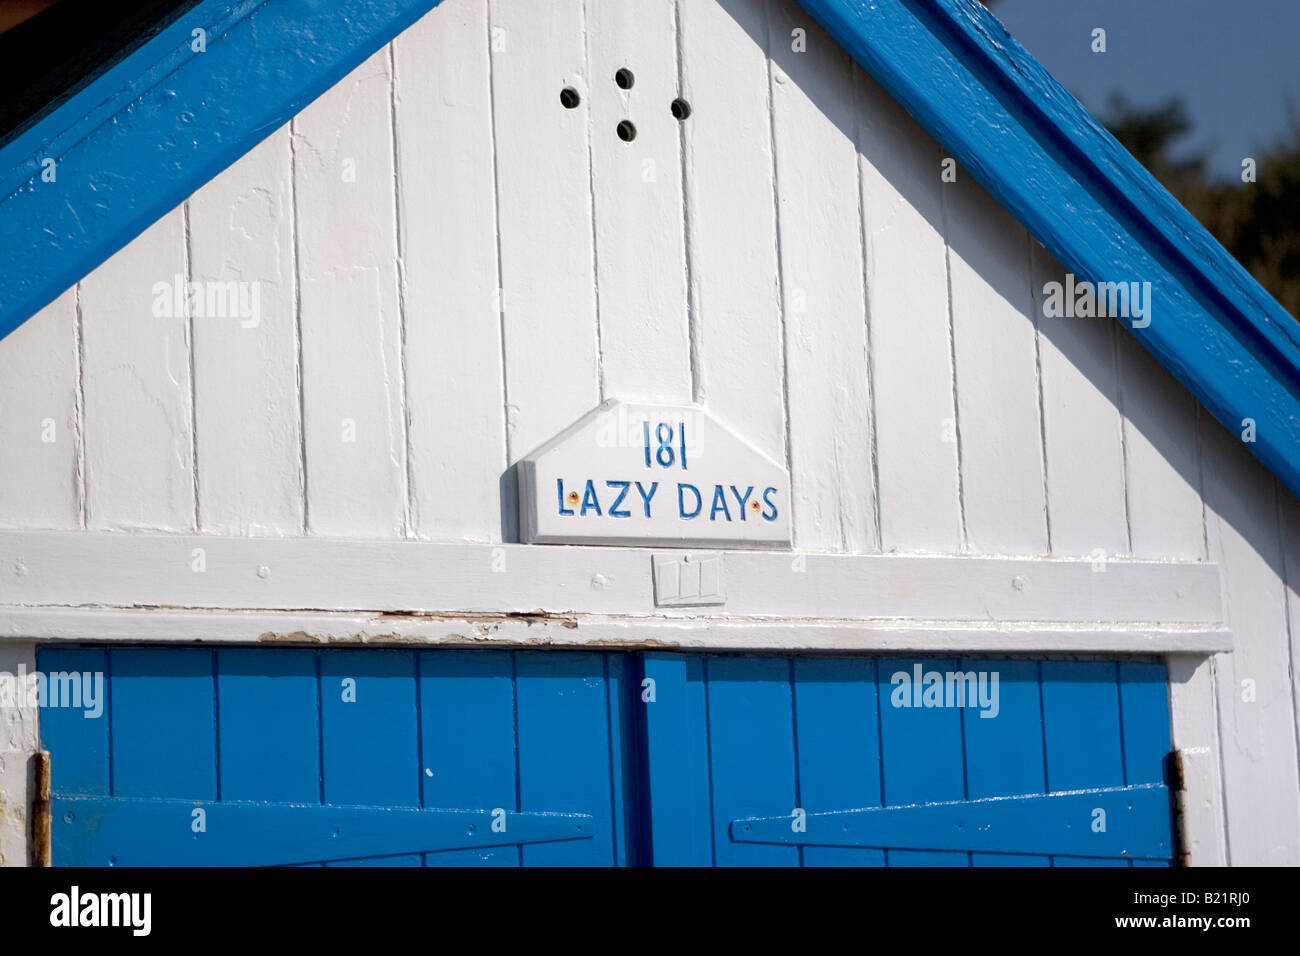 'Lazy Days.' Blue and white beach hut in Felixstowe, Suffolk, England. - Stock Image